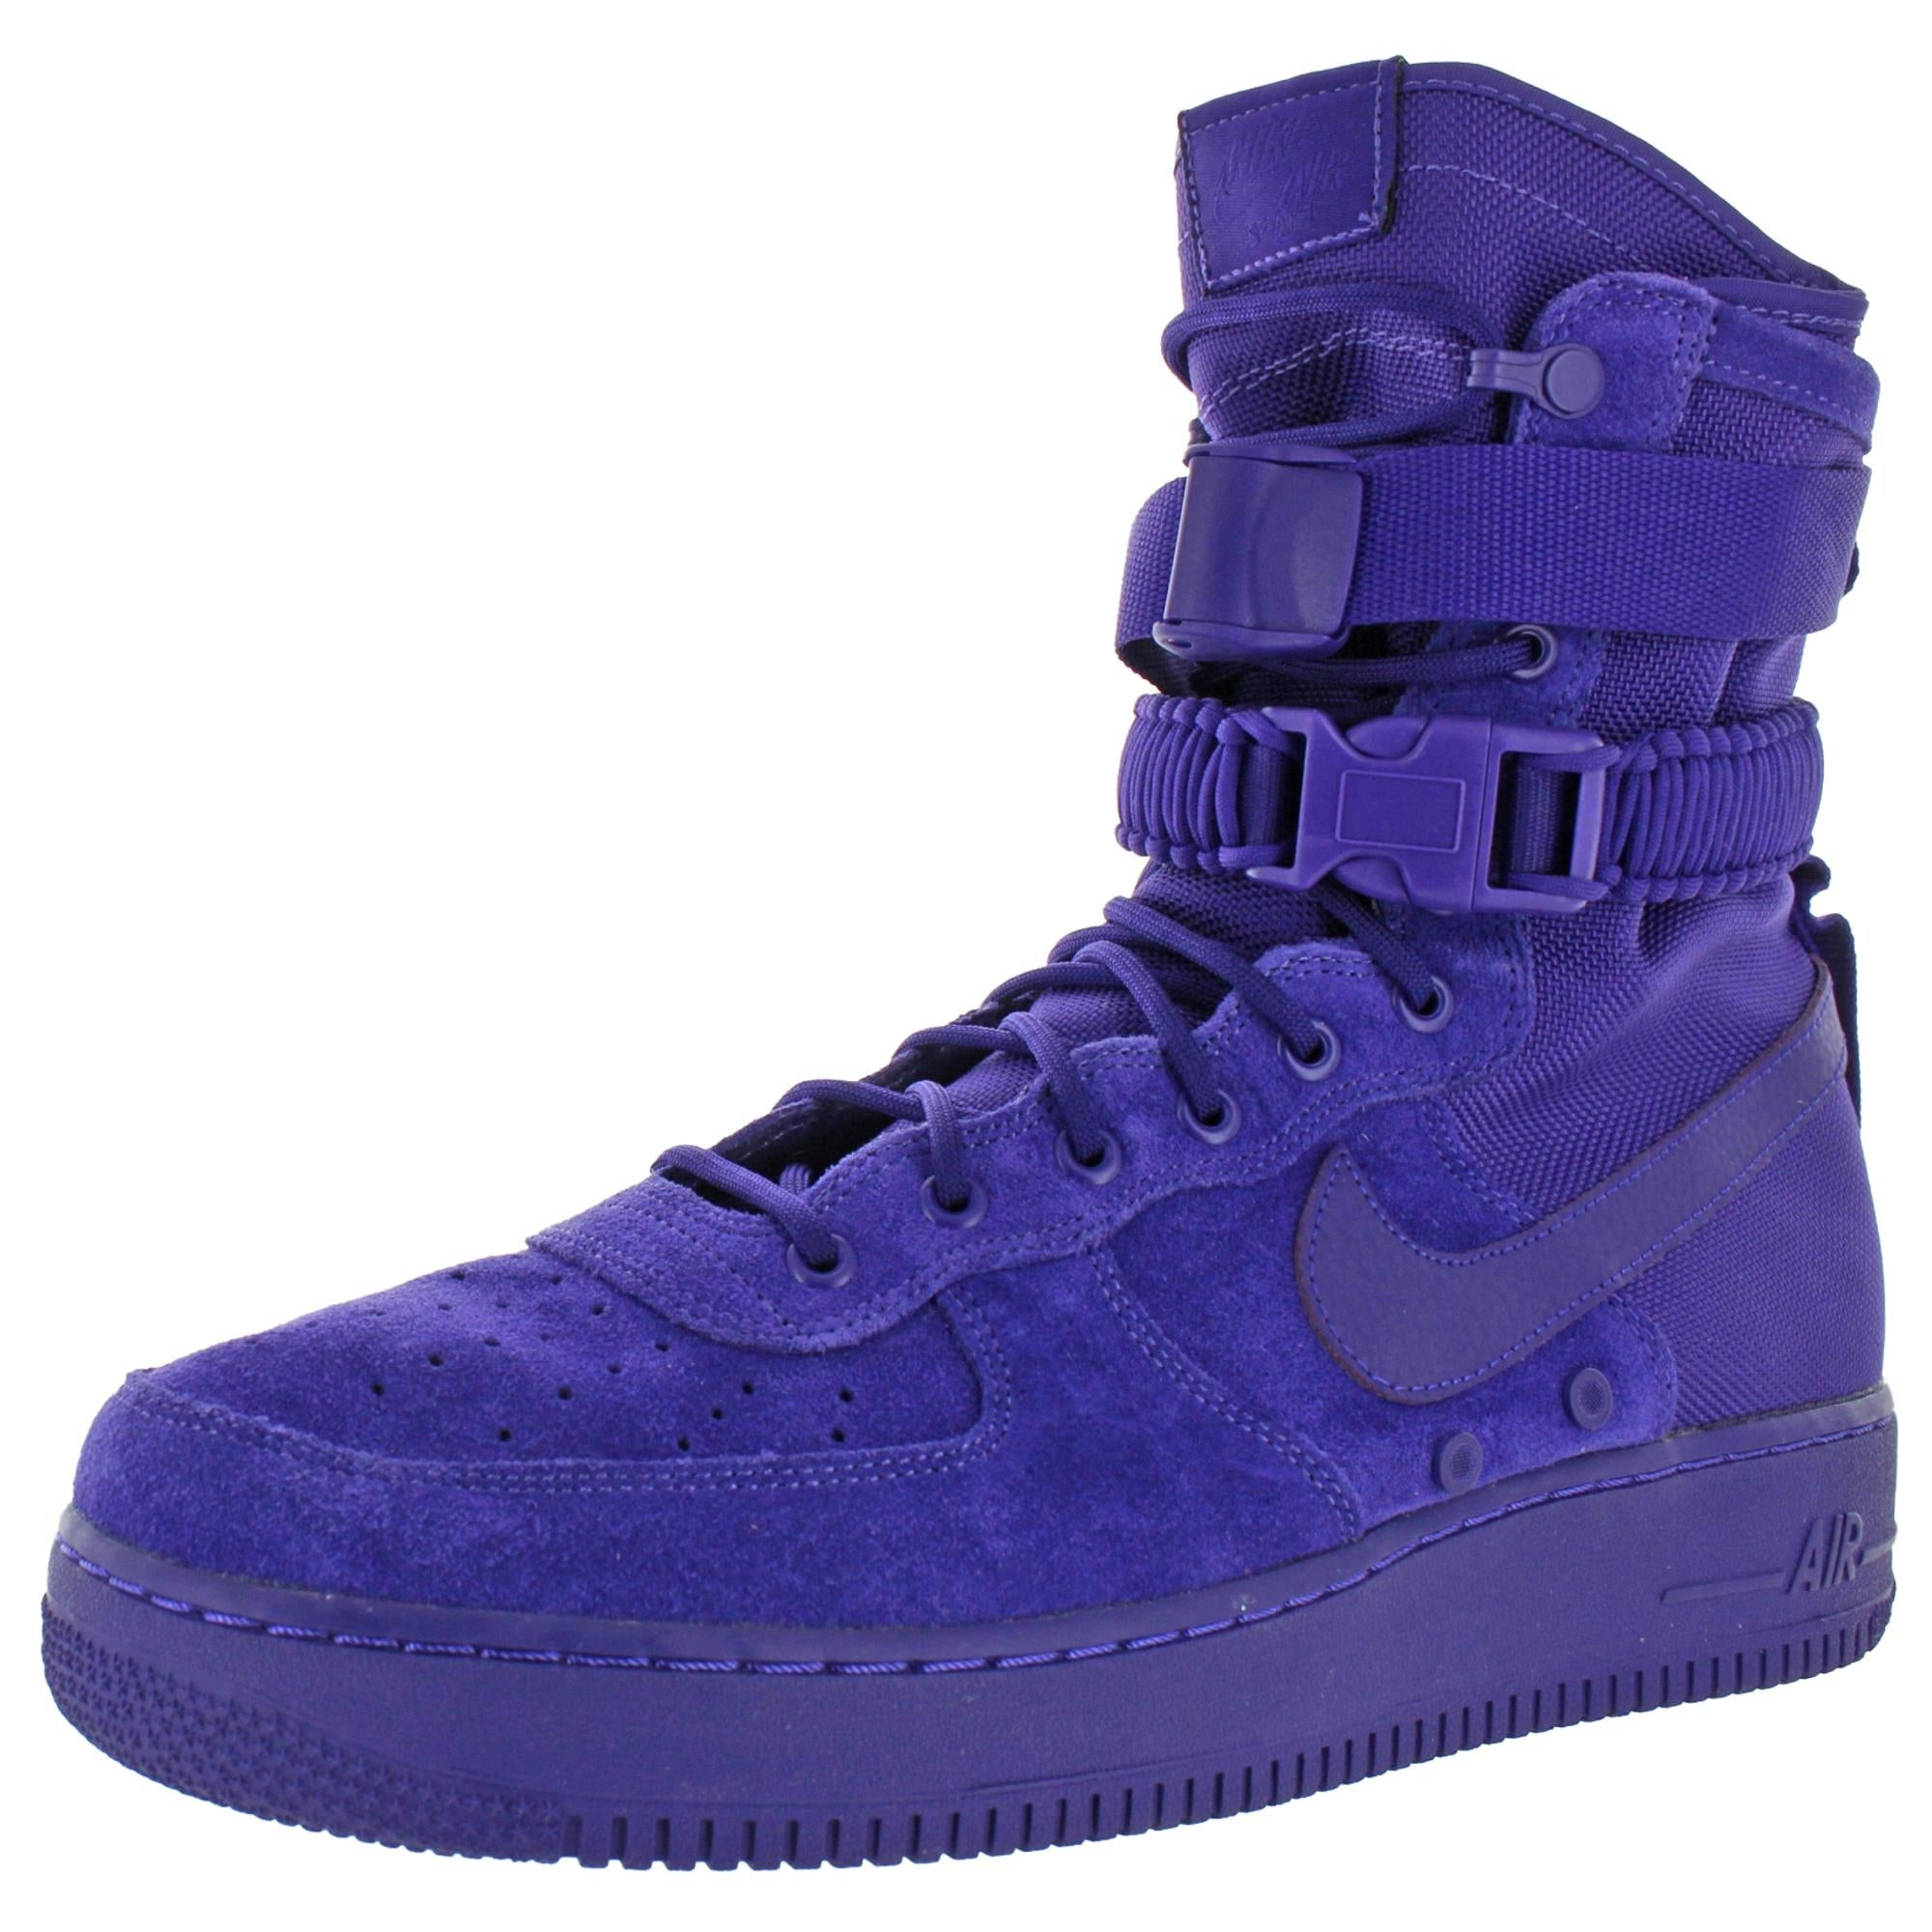 Nike Mens Air Force 1 Fashion Sneakers High Top Perforated